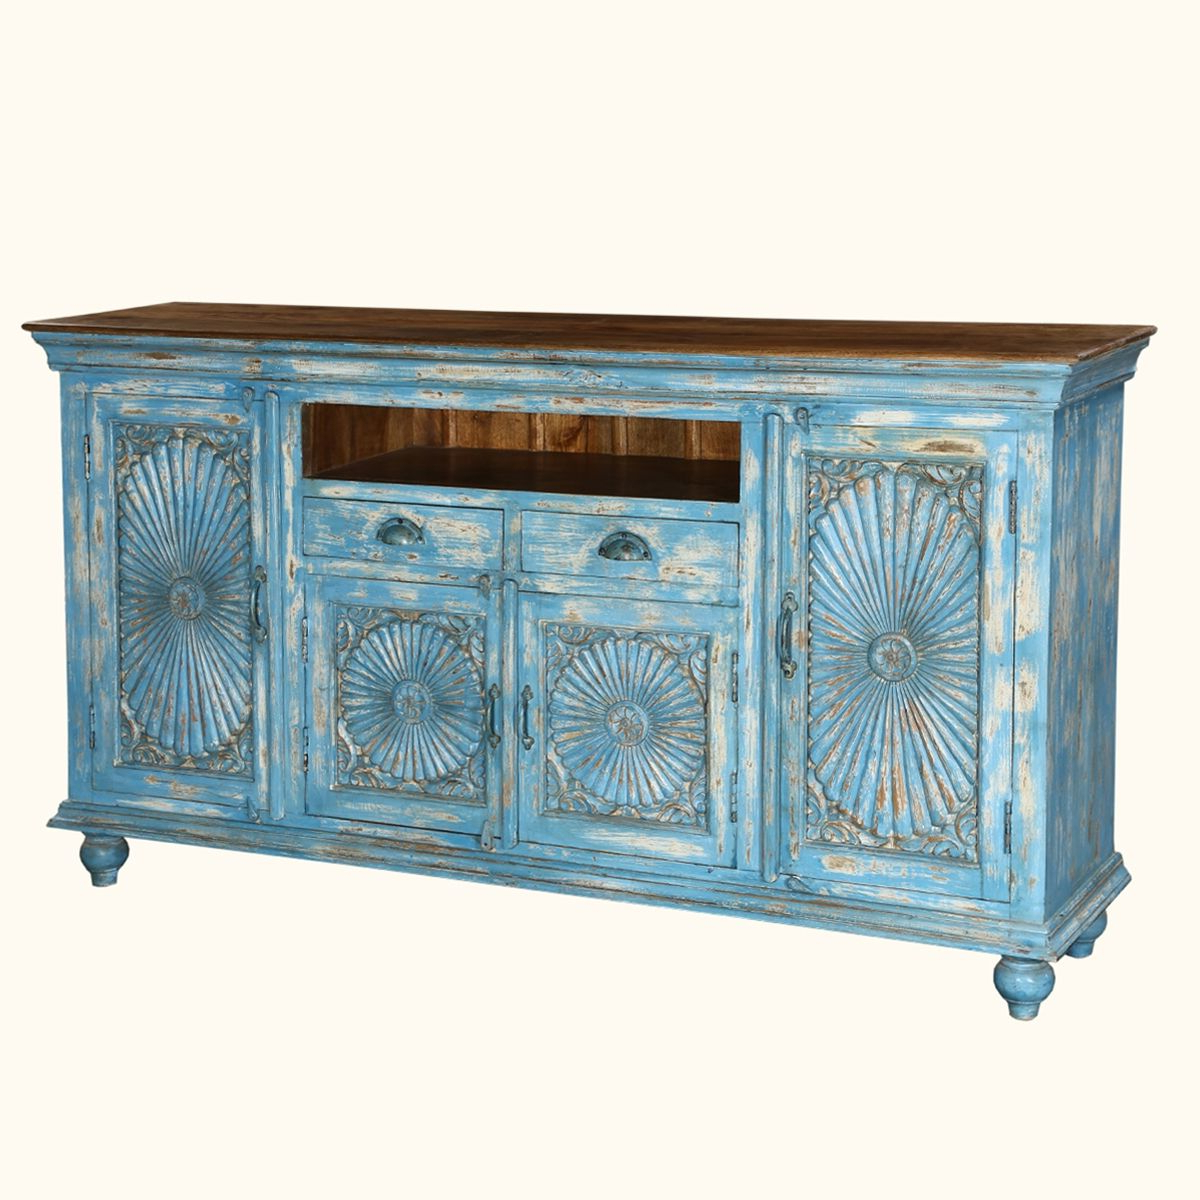 Trendy Starburst 3 Door Sideboards Intended For Sky Blue Starburst Handcrafted Mango Wood 2 Drawer Buffet Cabinet (View 11 of 20)